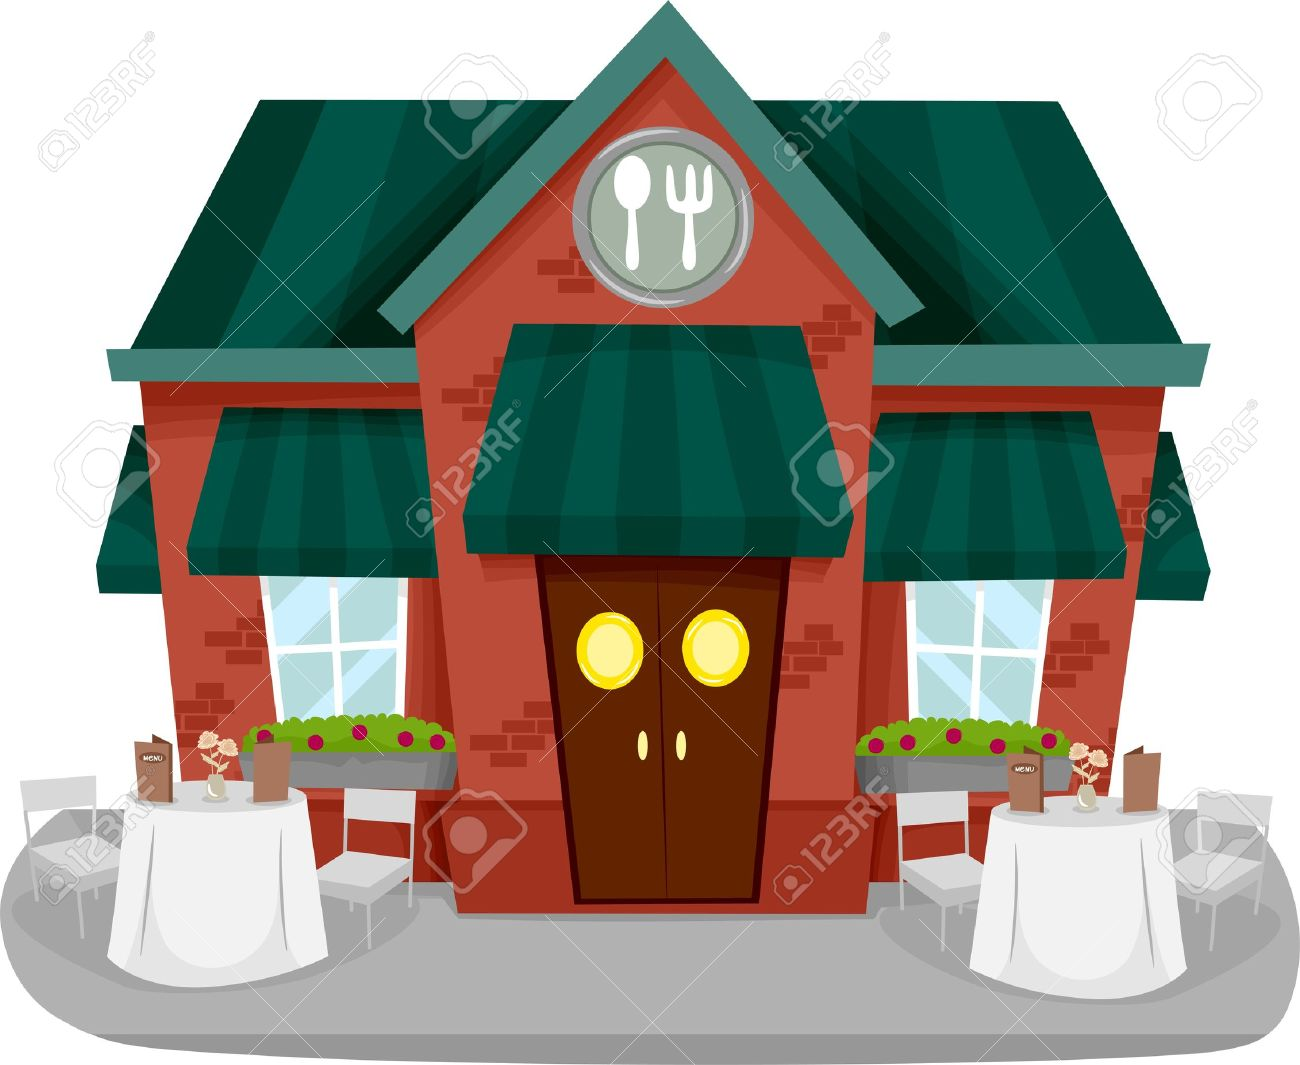 Illustration of a Restaurant Facade with Tables and Chairs Stock Photo - 18834936